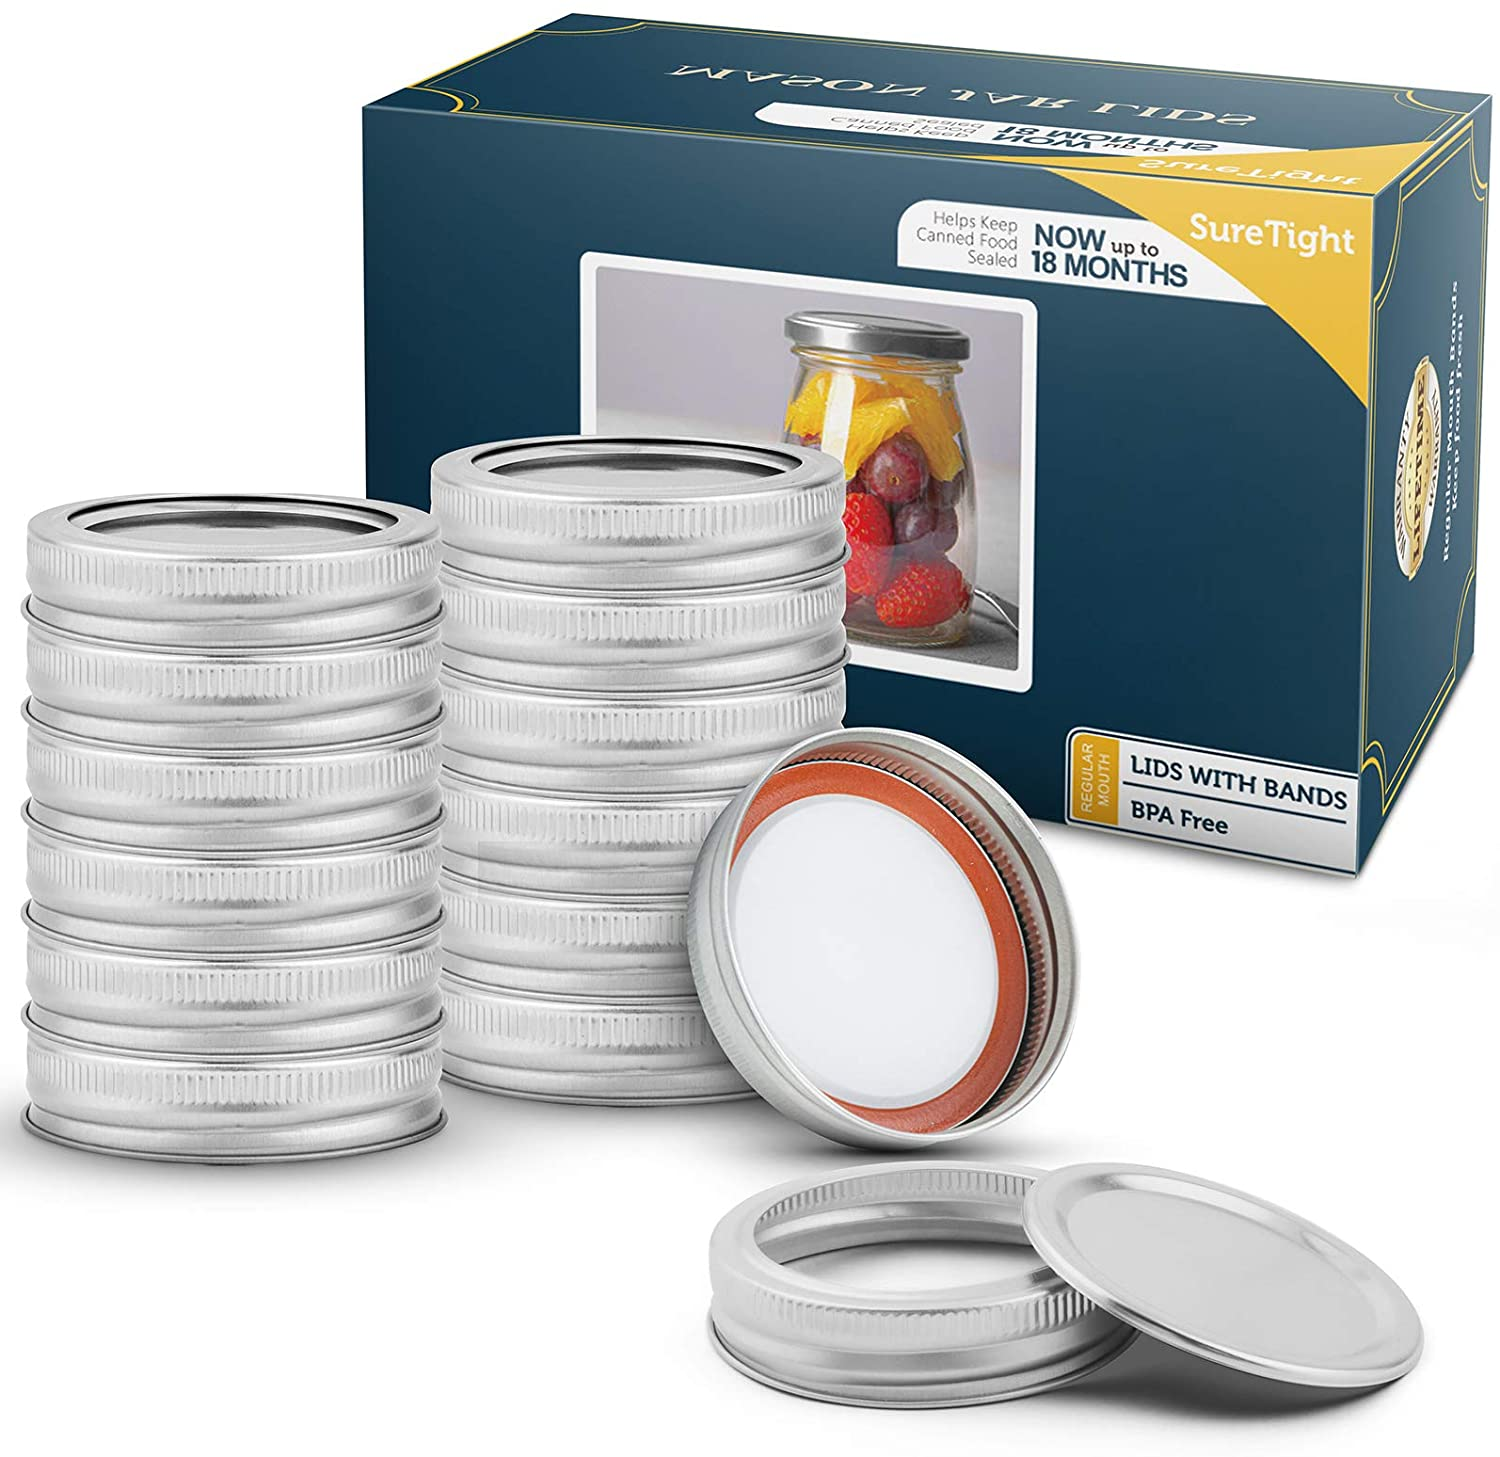 Blisset Mason Jars Glass Regular Mouth Metal Airtight Lids for Meal Prep, Food Storage, Canning, Drinking, Overnight Oats, Jelly, Dry Food, Spices, Salads, Yogurt 12 Sets per Box (Silver)